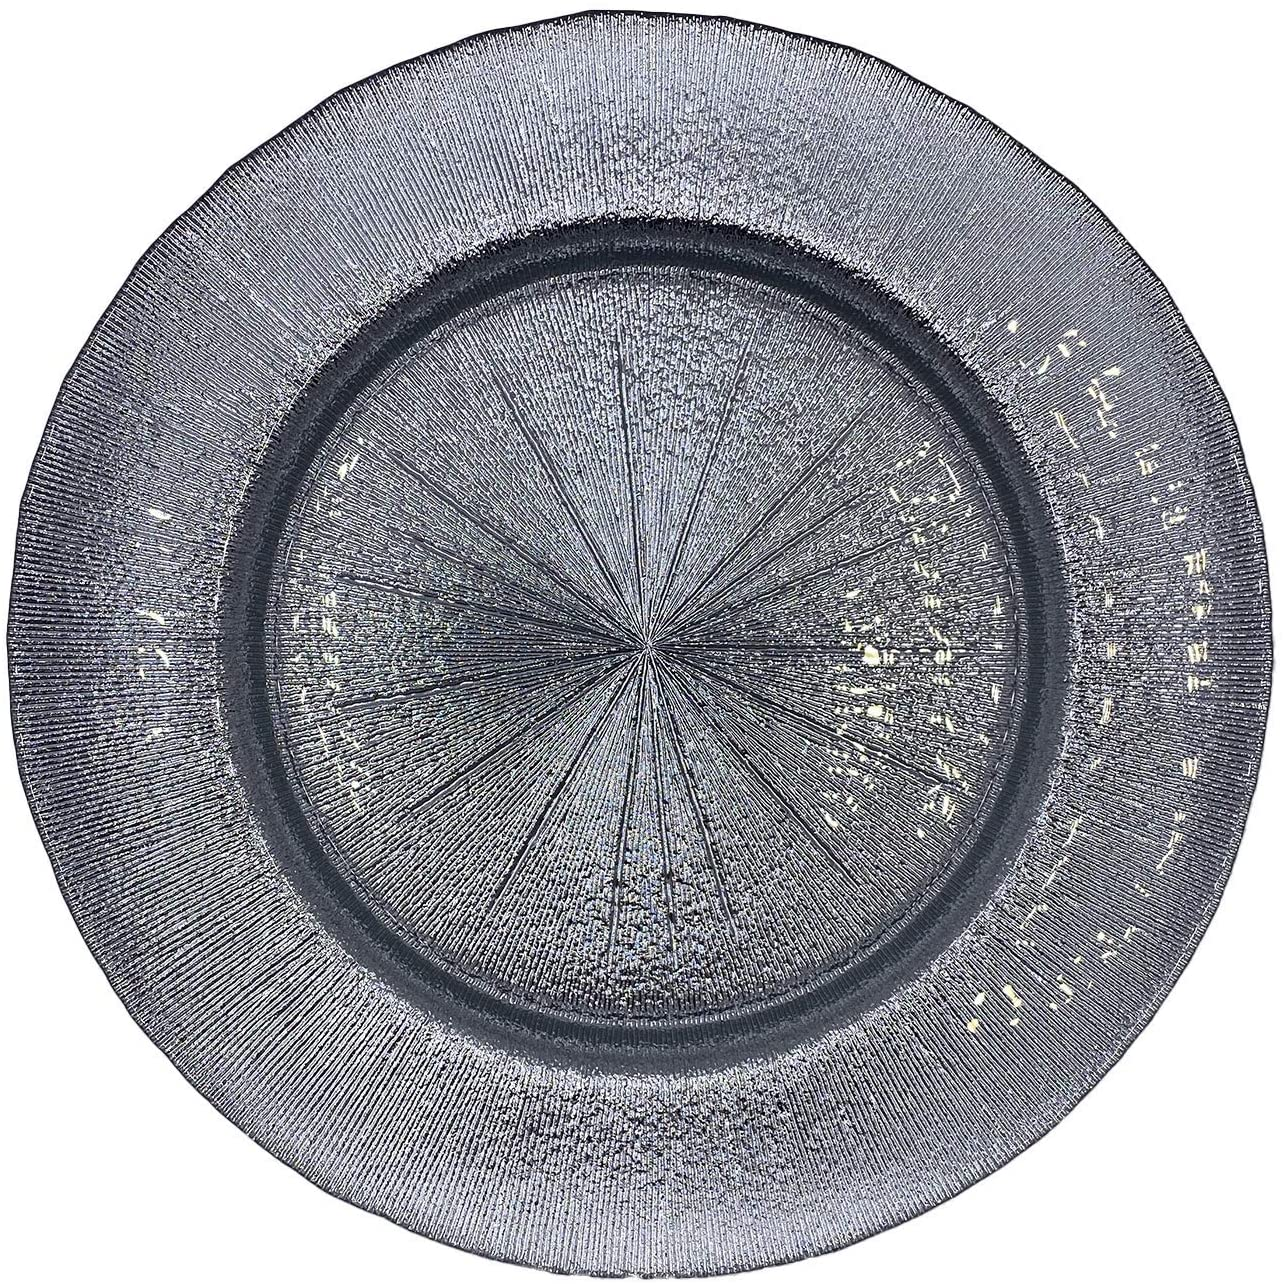 Urquid Linen, Metallic Glass 13 Charger Plate, Set Of 4, Use for Elegant Wedding Décor, Luxe Dinner Parties and Special Events, and Any Elegant Occassion (Silver)